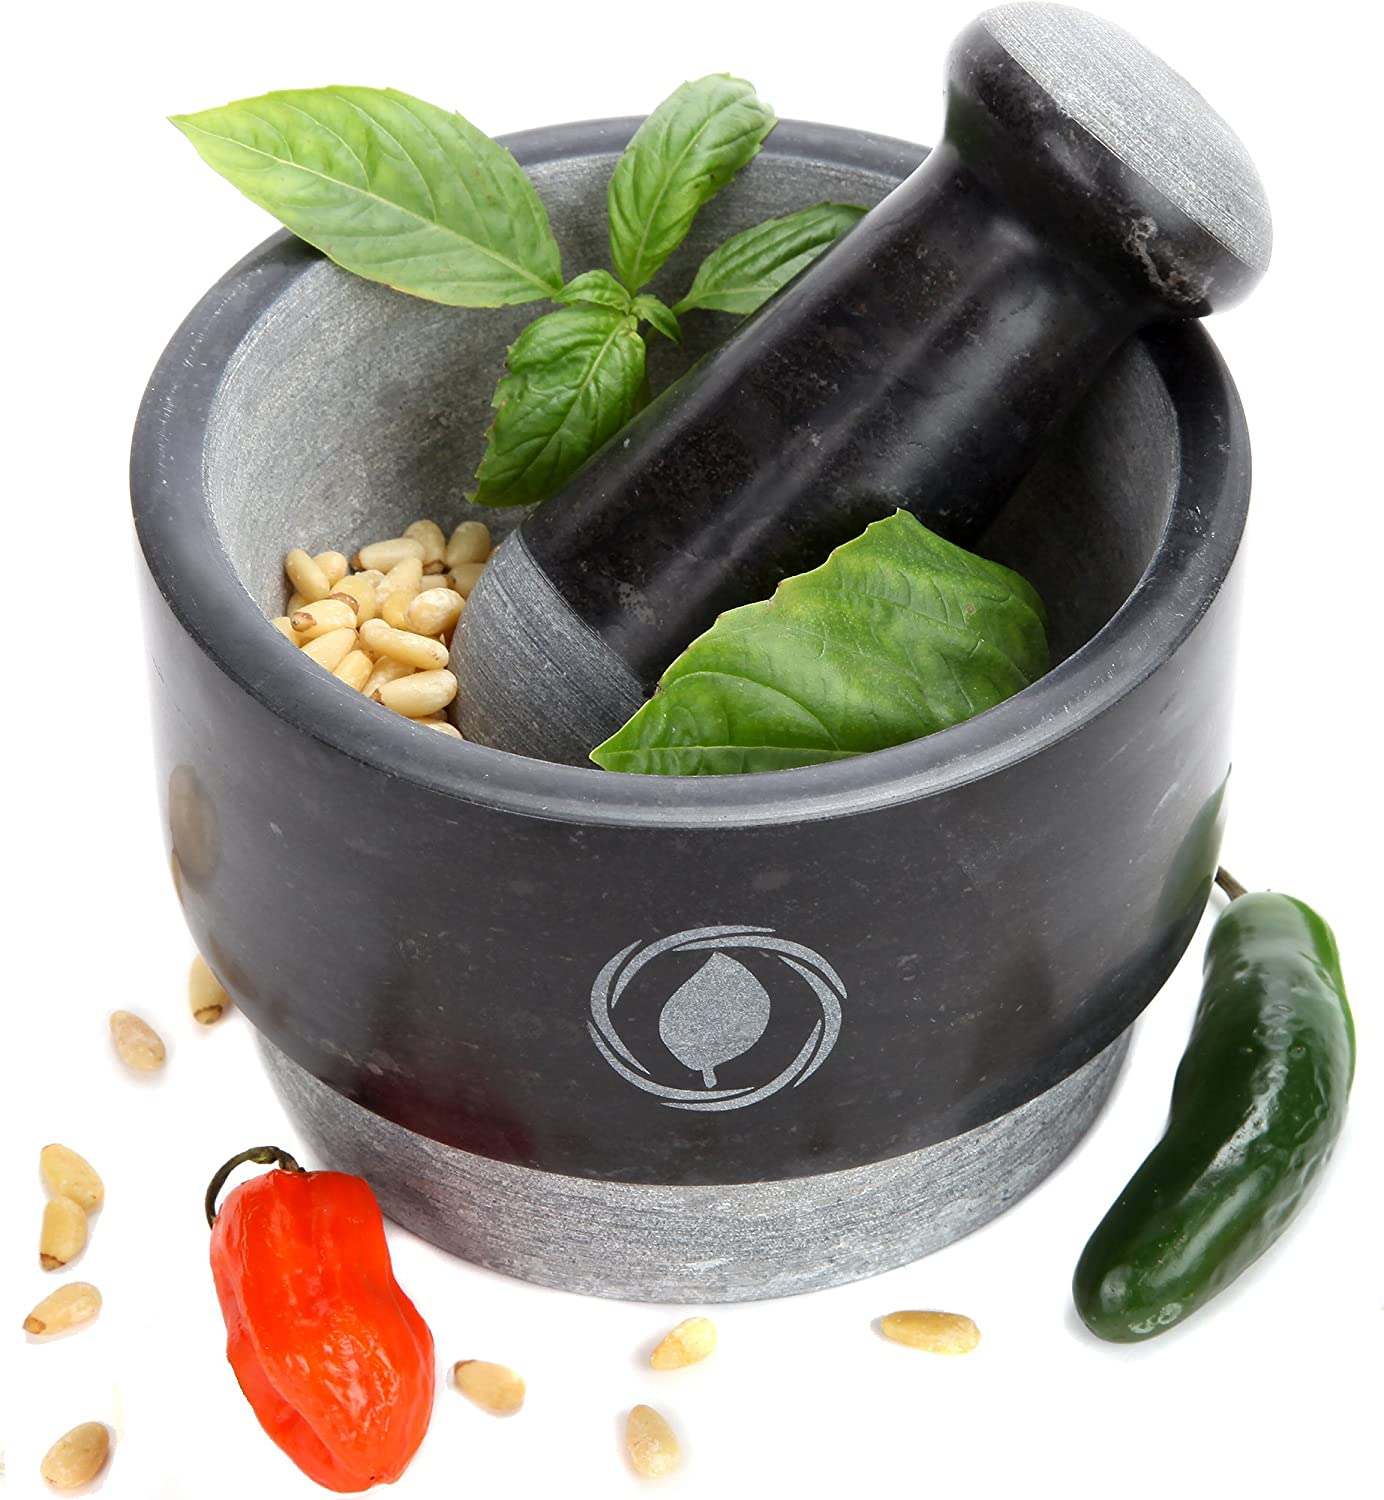 Mortar and Pestle Set Granite (NEW) - REVERSIBLE - Large Mortar Set with FREE Silicone Lid/Mat and Spoon [5.5 Inch, 17 Oz] Laevo Cook